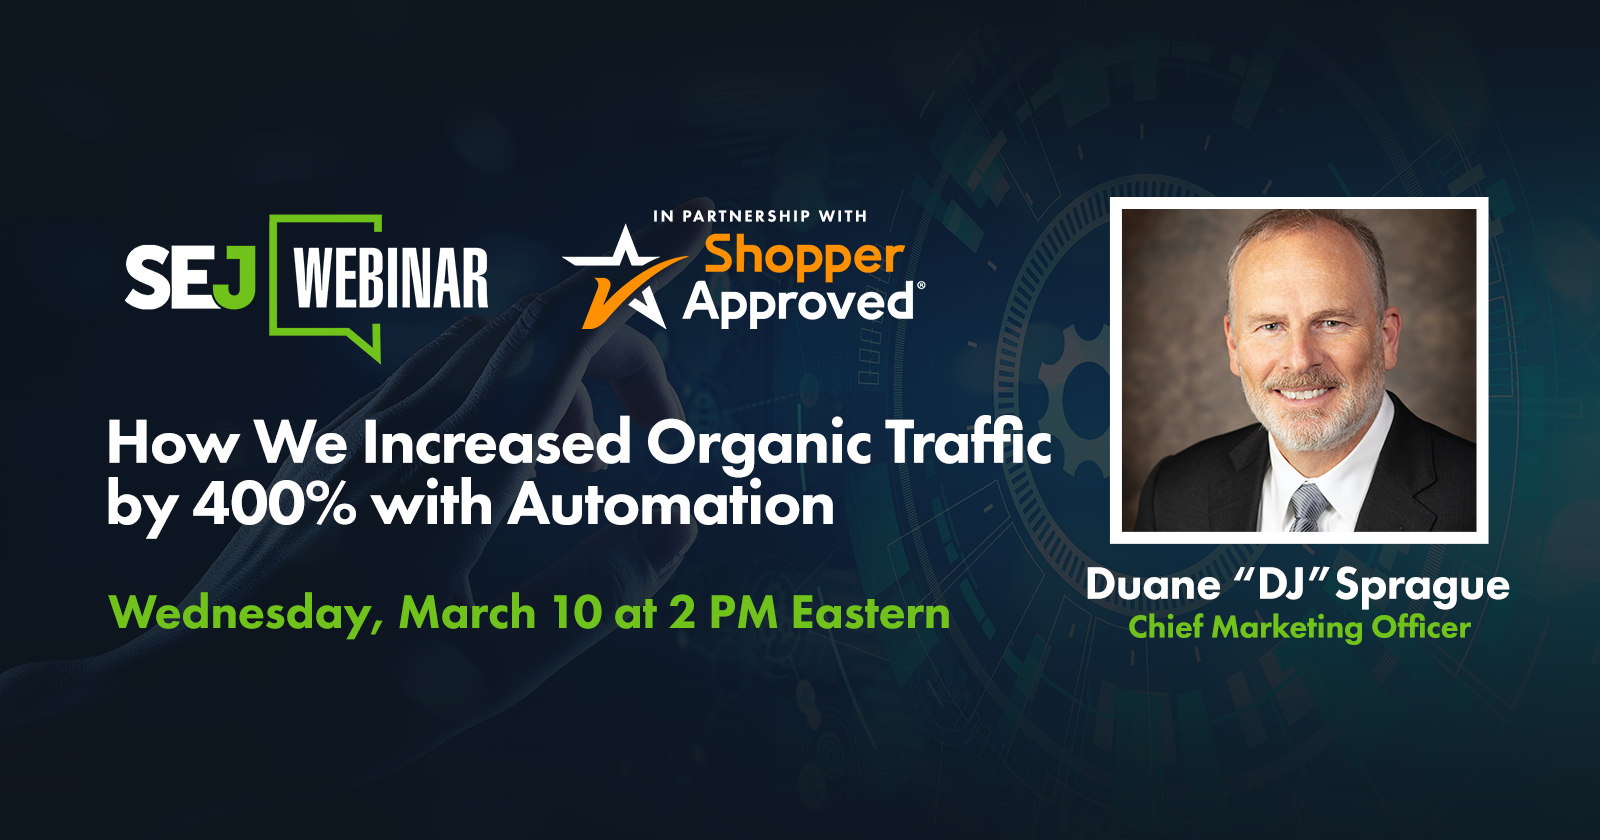 How to Increase Organic Traffic by 400% with Automation [Webinar] via @lorenbaker